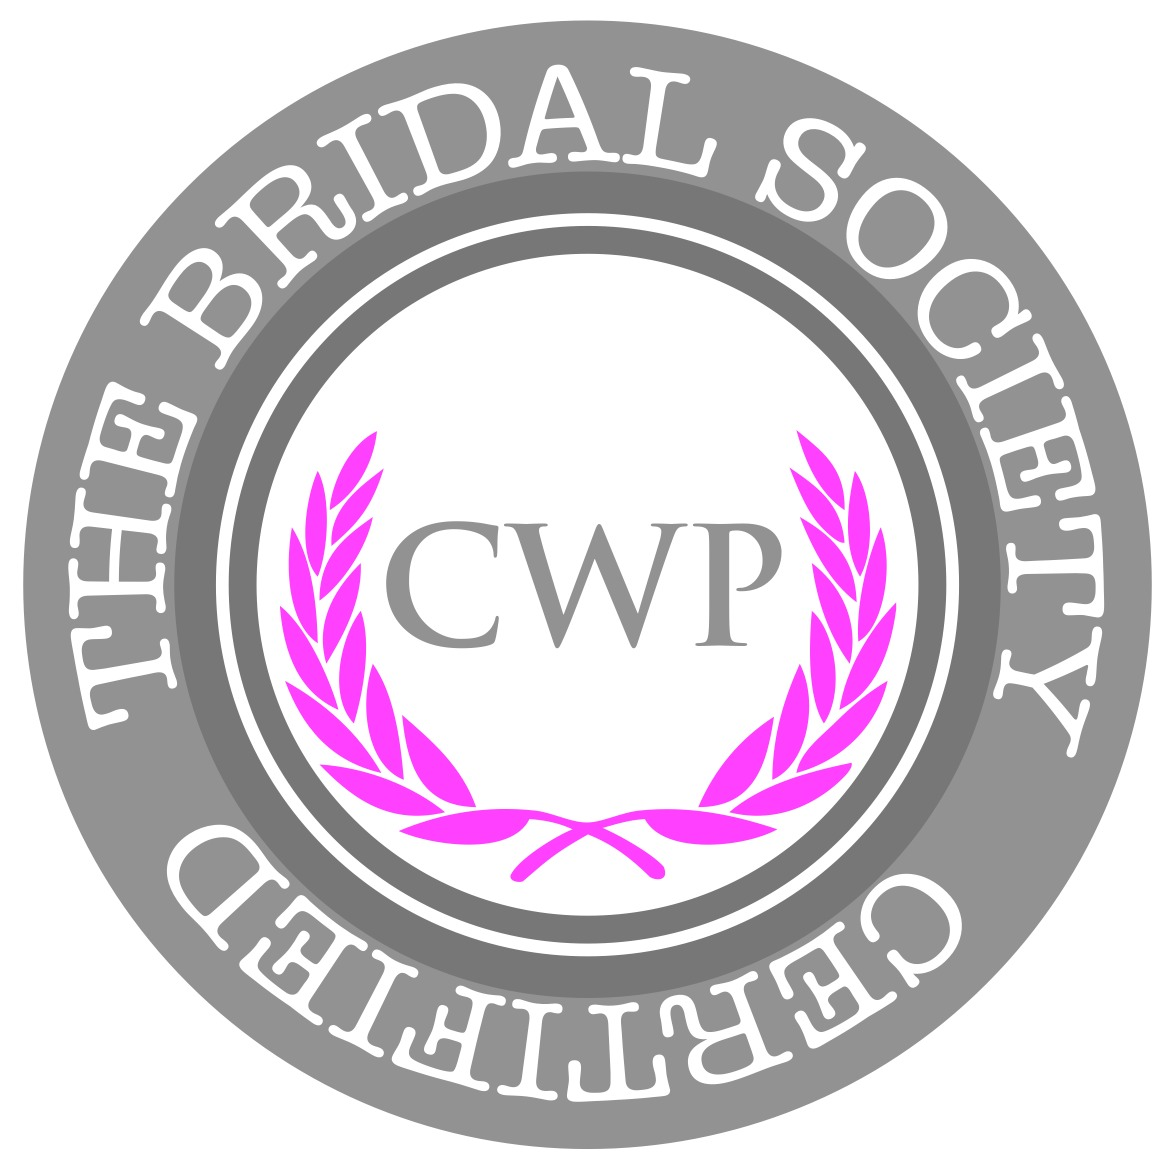 The Bridal Society Certified Wedding Planner